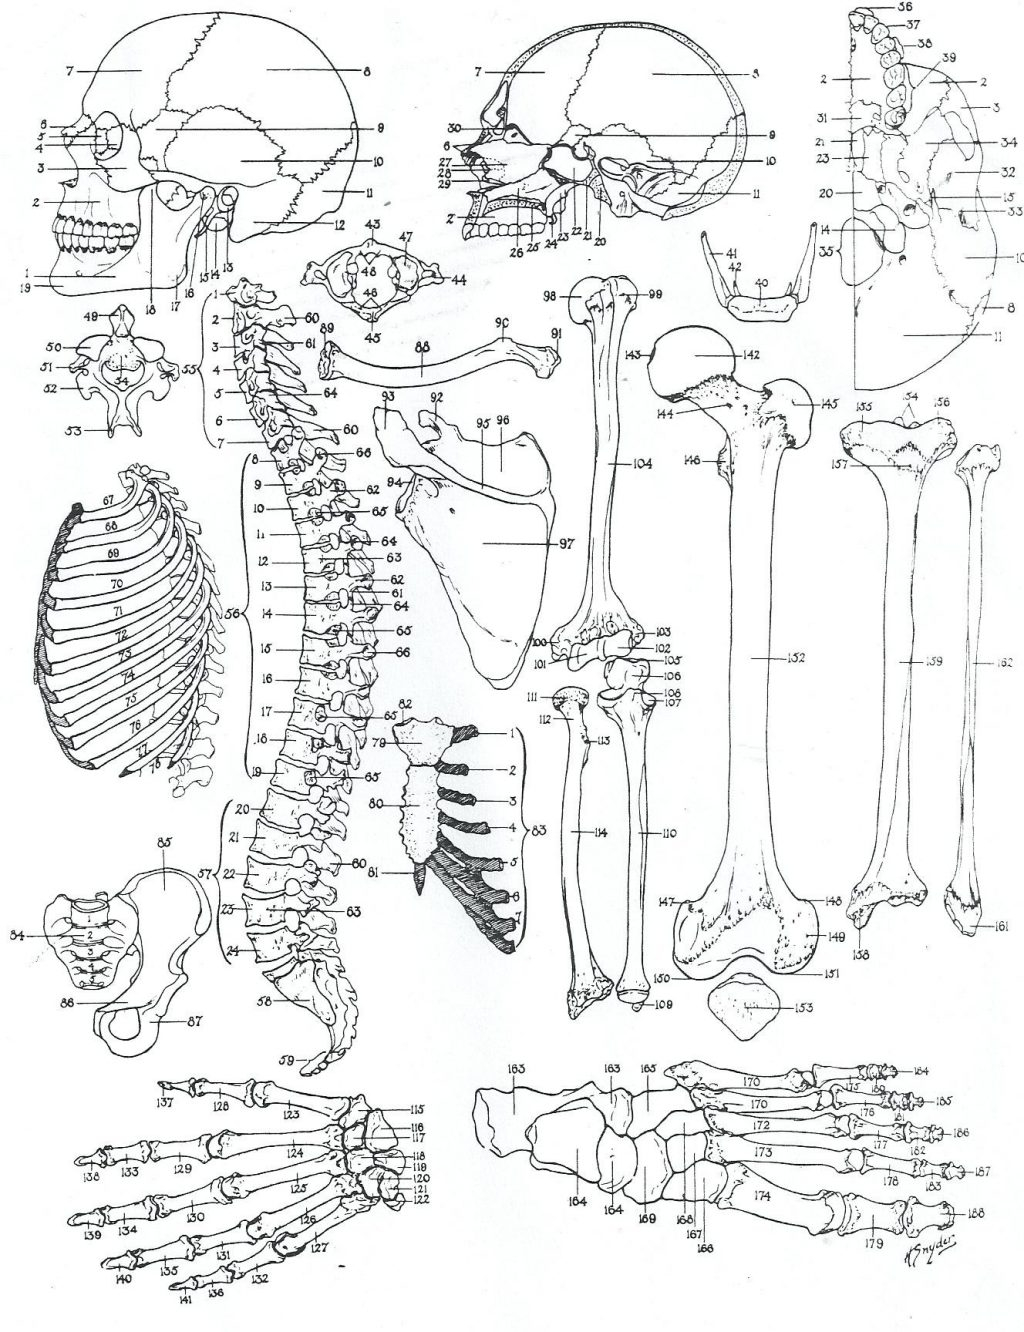 Coloring Page ~ Anatomy Coloring Pages Dechome Me And Book For Kids - Free Printable Anatomy Pictures